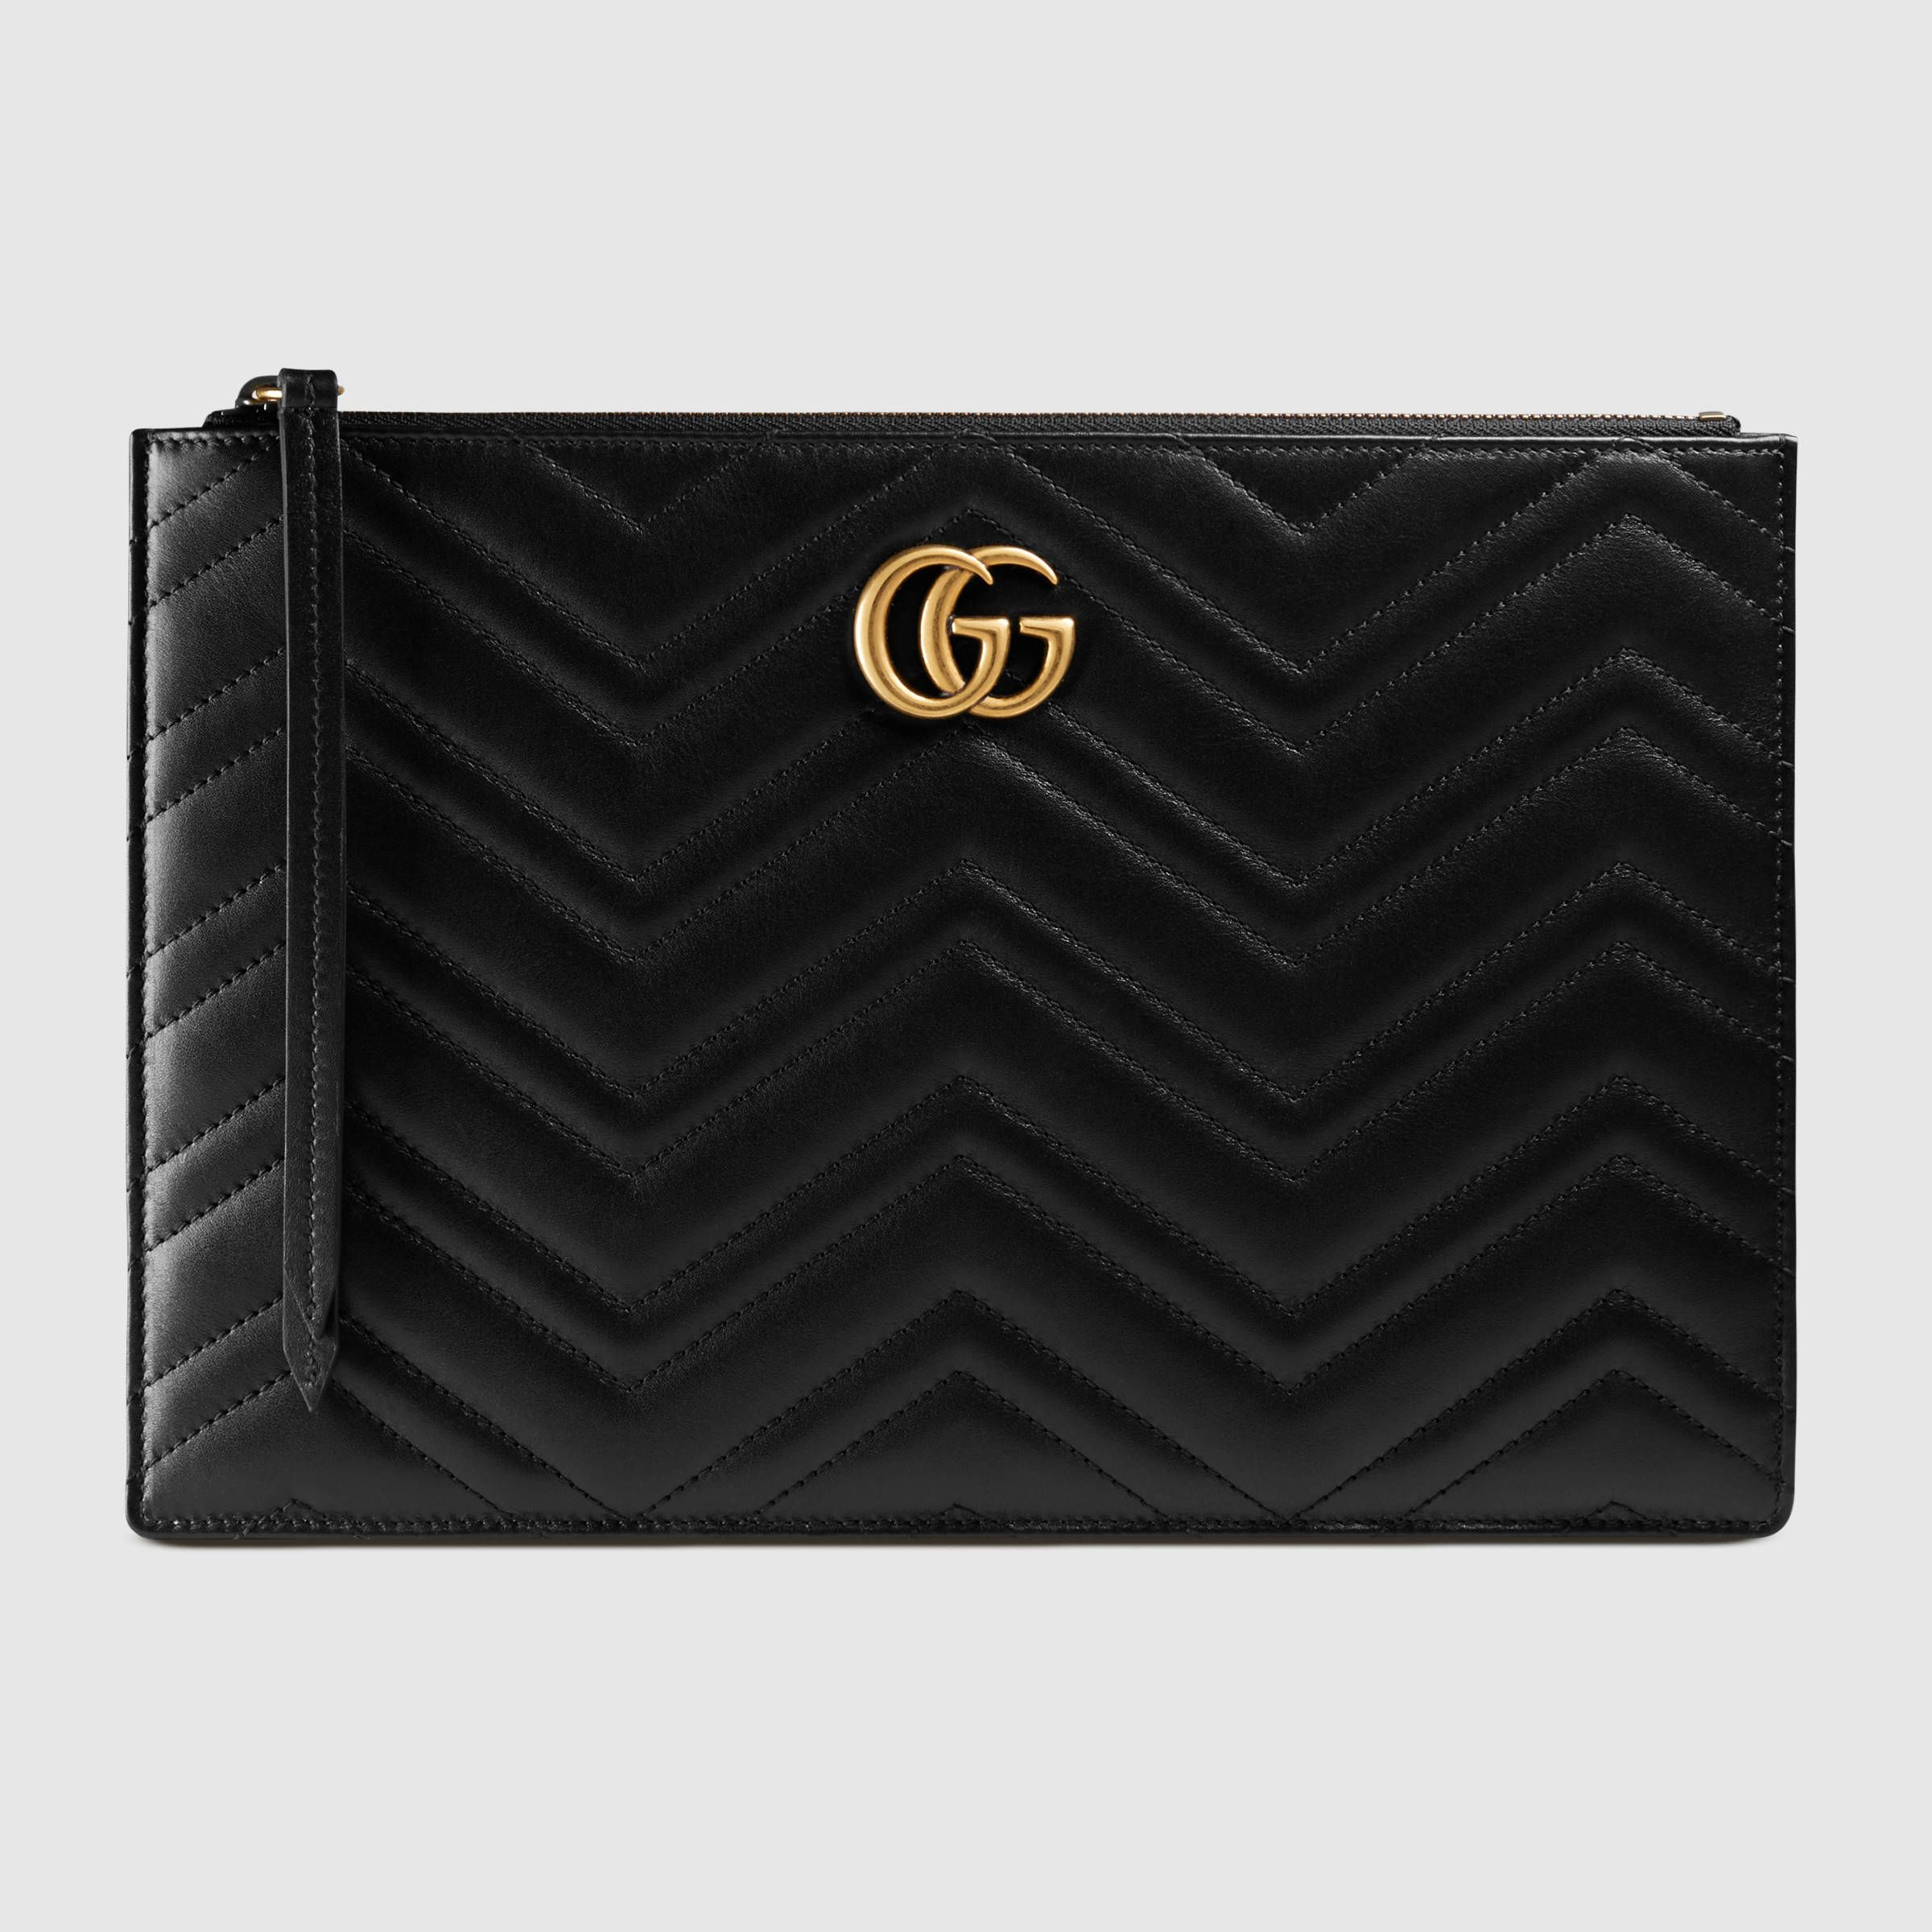 2ef4c5bee4d4dc Shop the GG Marmont matelassé leather pouch by Gucci. The GG Marmont pouch  has a softly structured shape and a top zip closure. The hardware is  inspired by ...